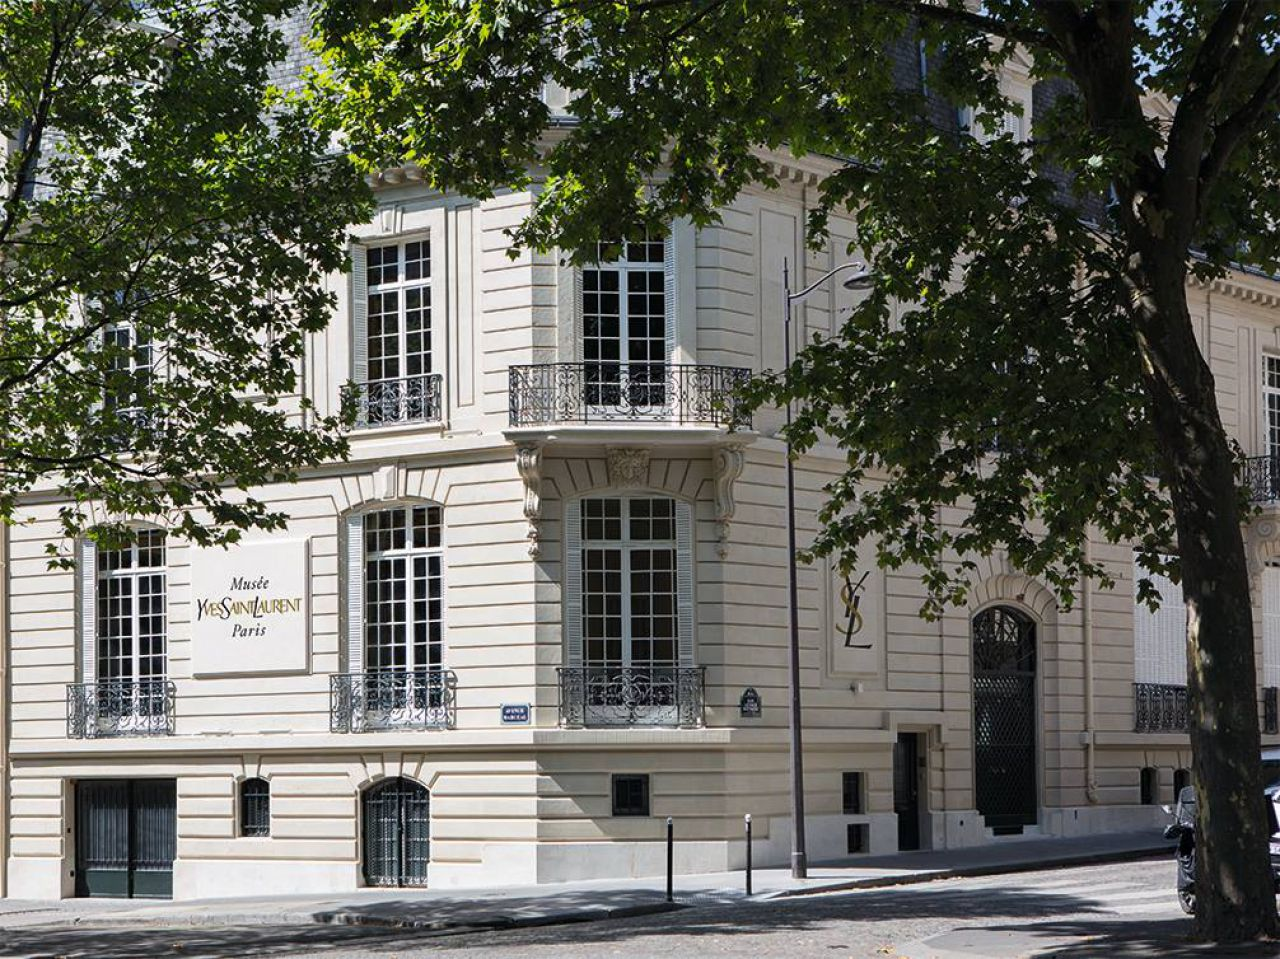 Musee Yves Saint Laurent Paris - YSL Foundation - top fashion designer 20th century - legendary hôtel particulier on 5 avenue Marceau